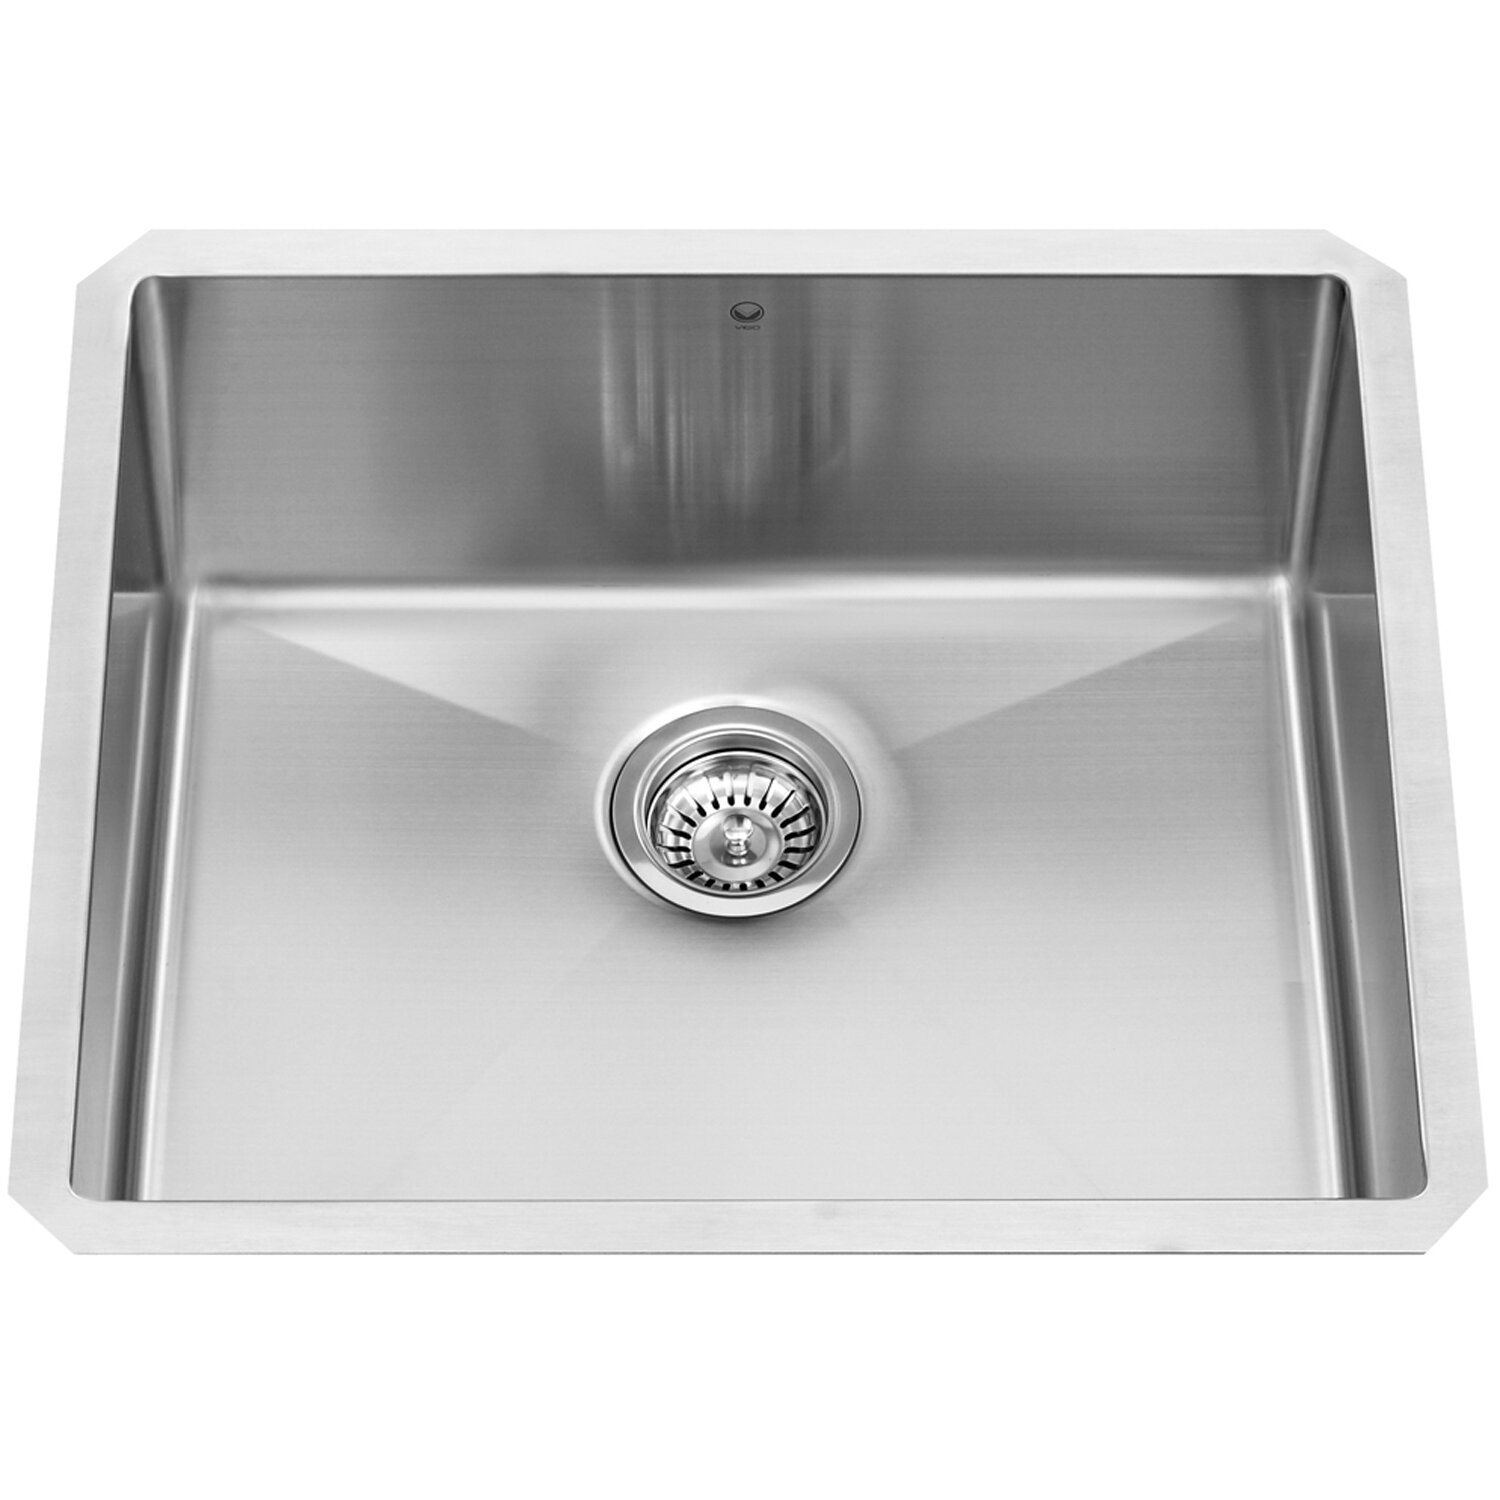 16 Gauge Undermount Kitchen Sink : Vigo Undermount Single Bowl 16 Gauge Stainless Steel Kitchen Sink ...